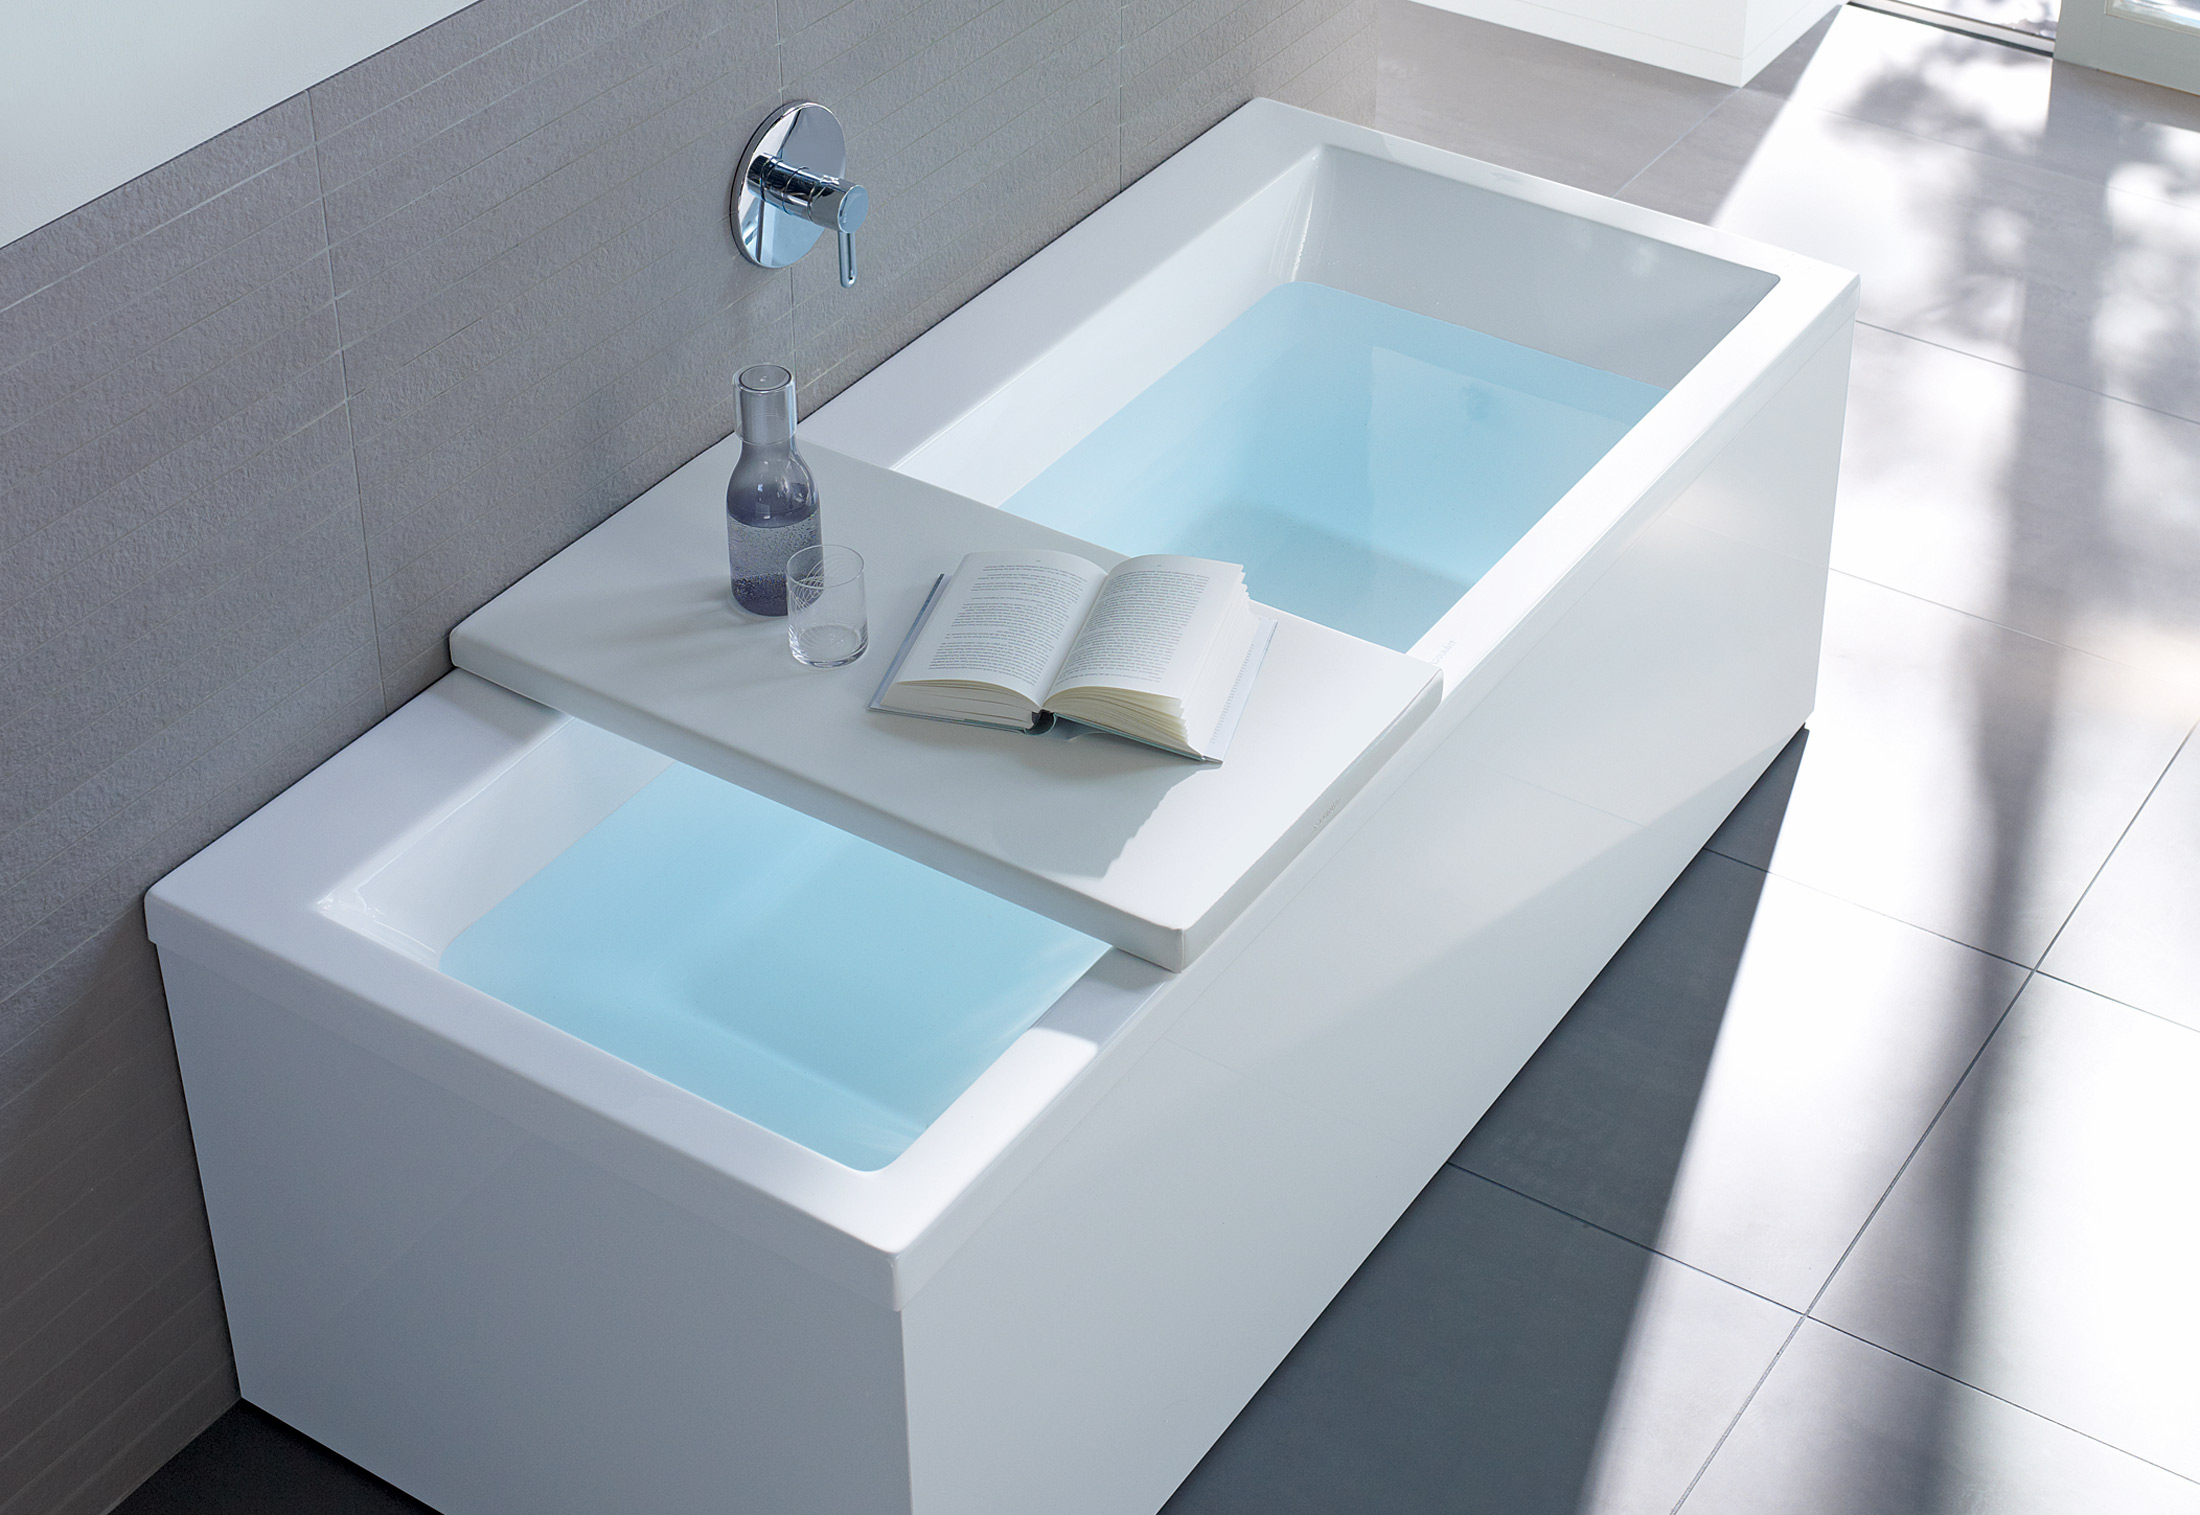 bathtub photorealistic obj com textures models index and d code render cfm turbosquid tub search duravit